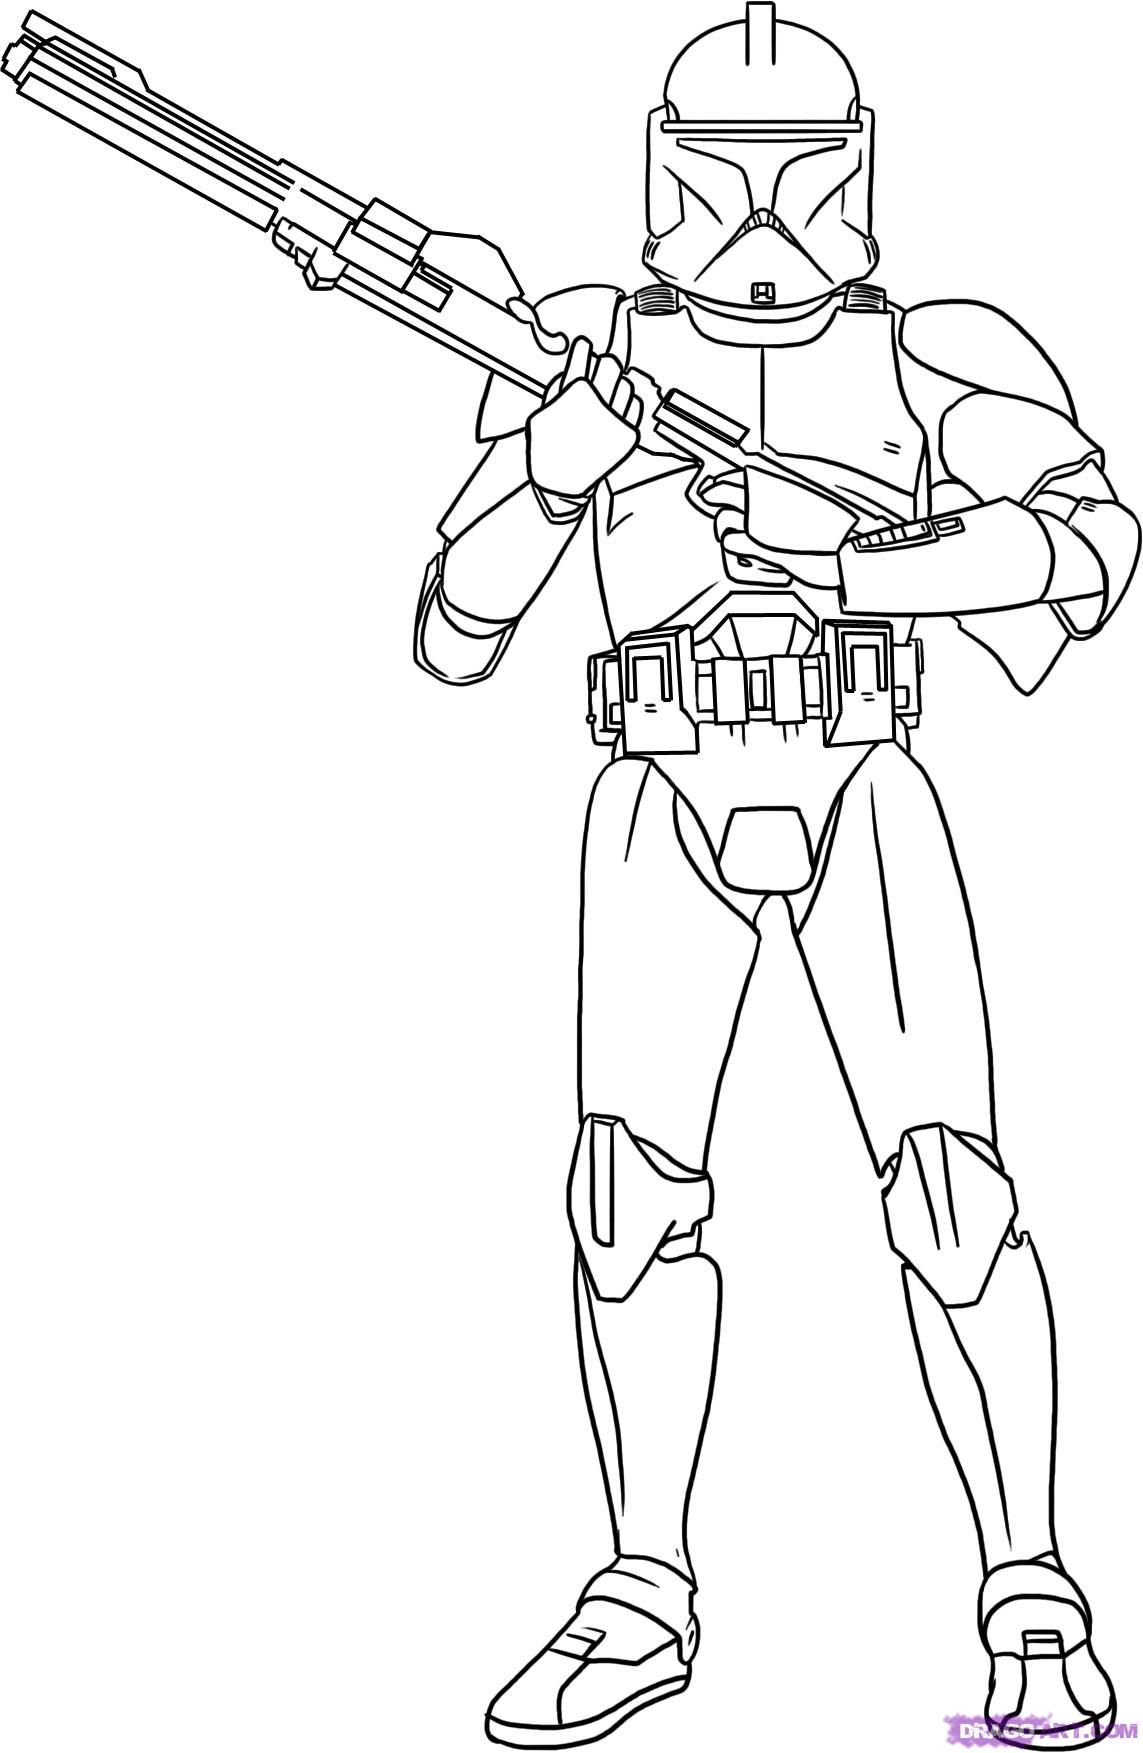 star wars clone wars coloring pages # 0